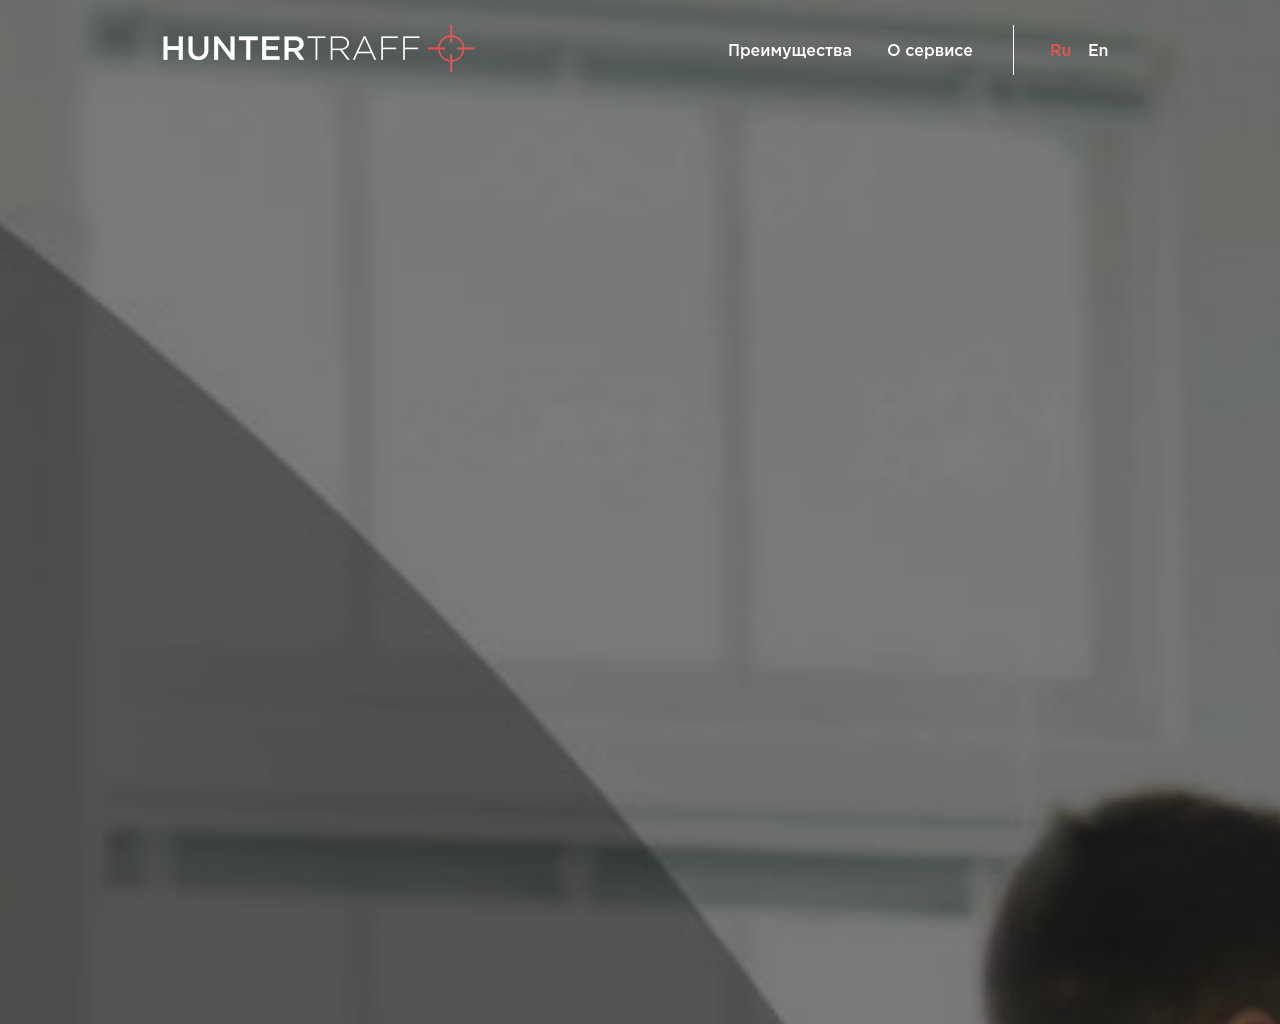 HunterTraff-Advertising-Reviews-Pricing